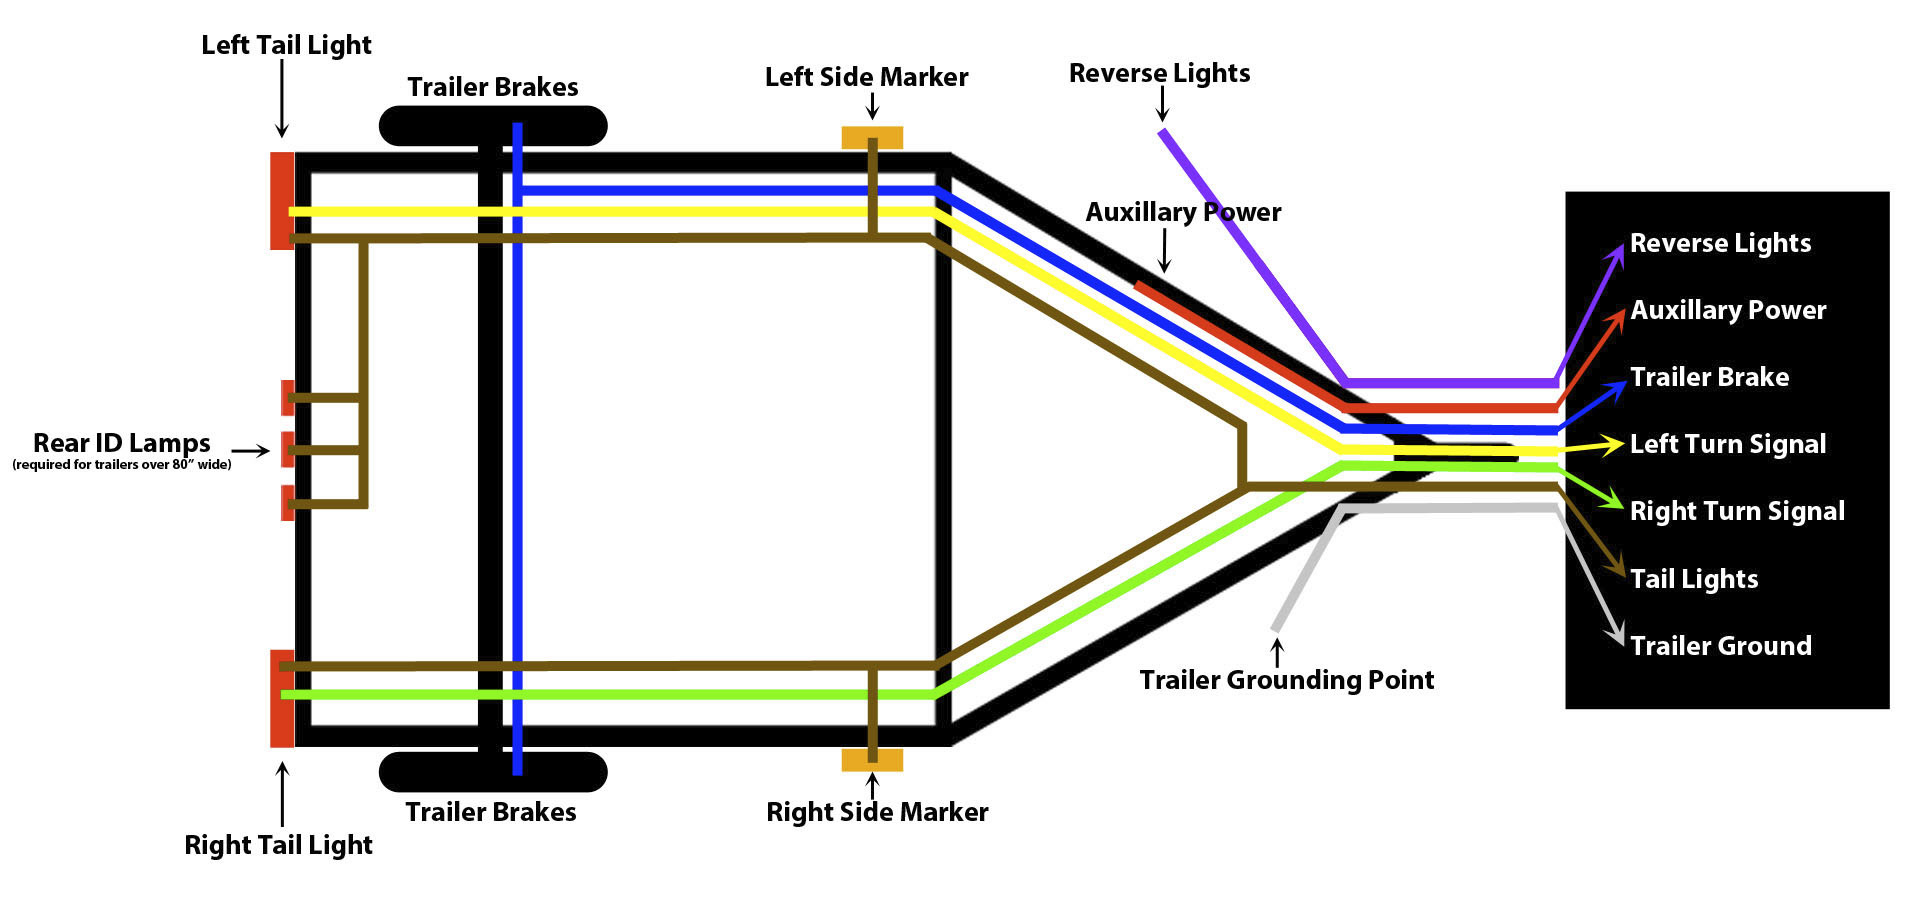 How To Wire Trailer Lights - Trailer Wiring Guide & Videos - Truck And Trailer Wiring Diagram